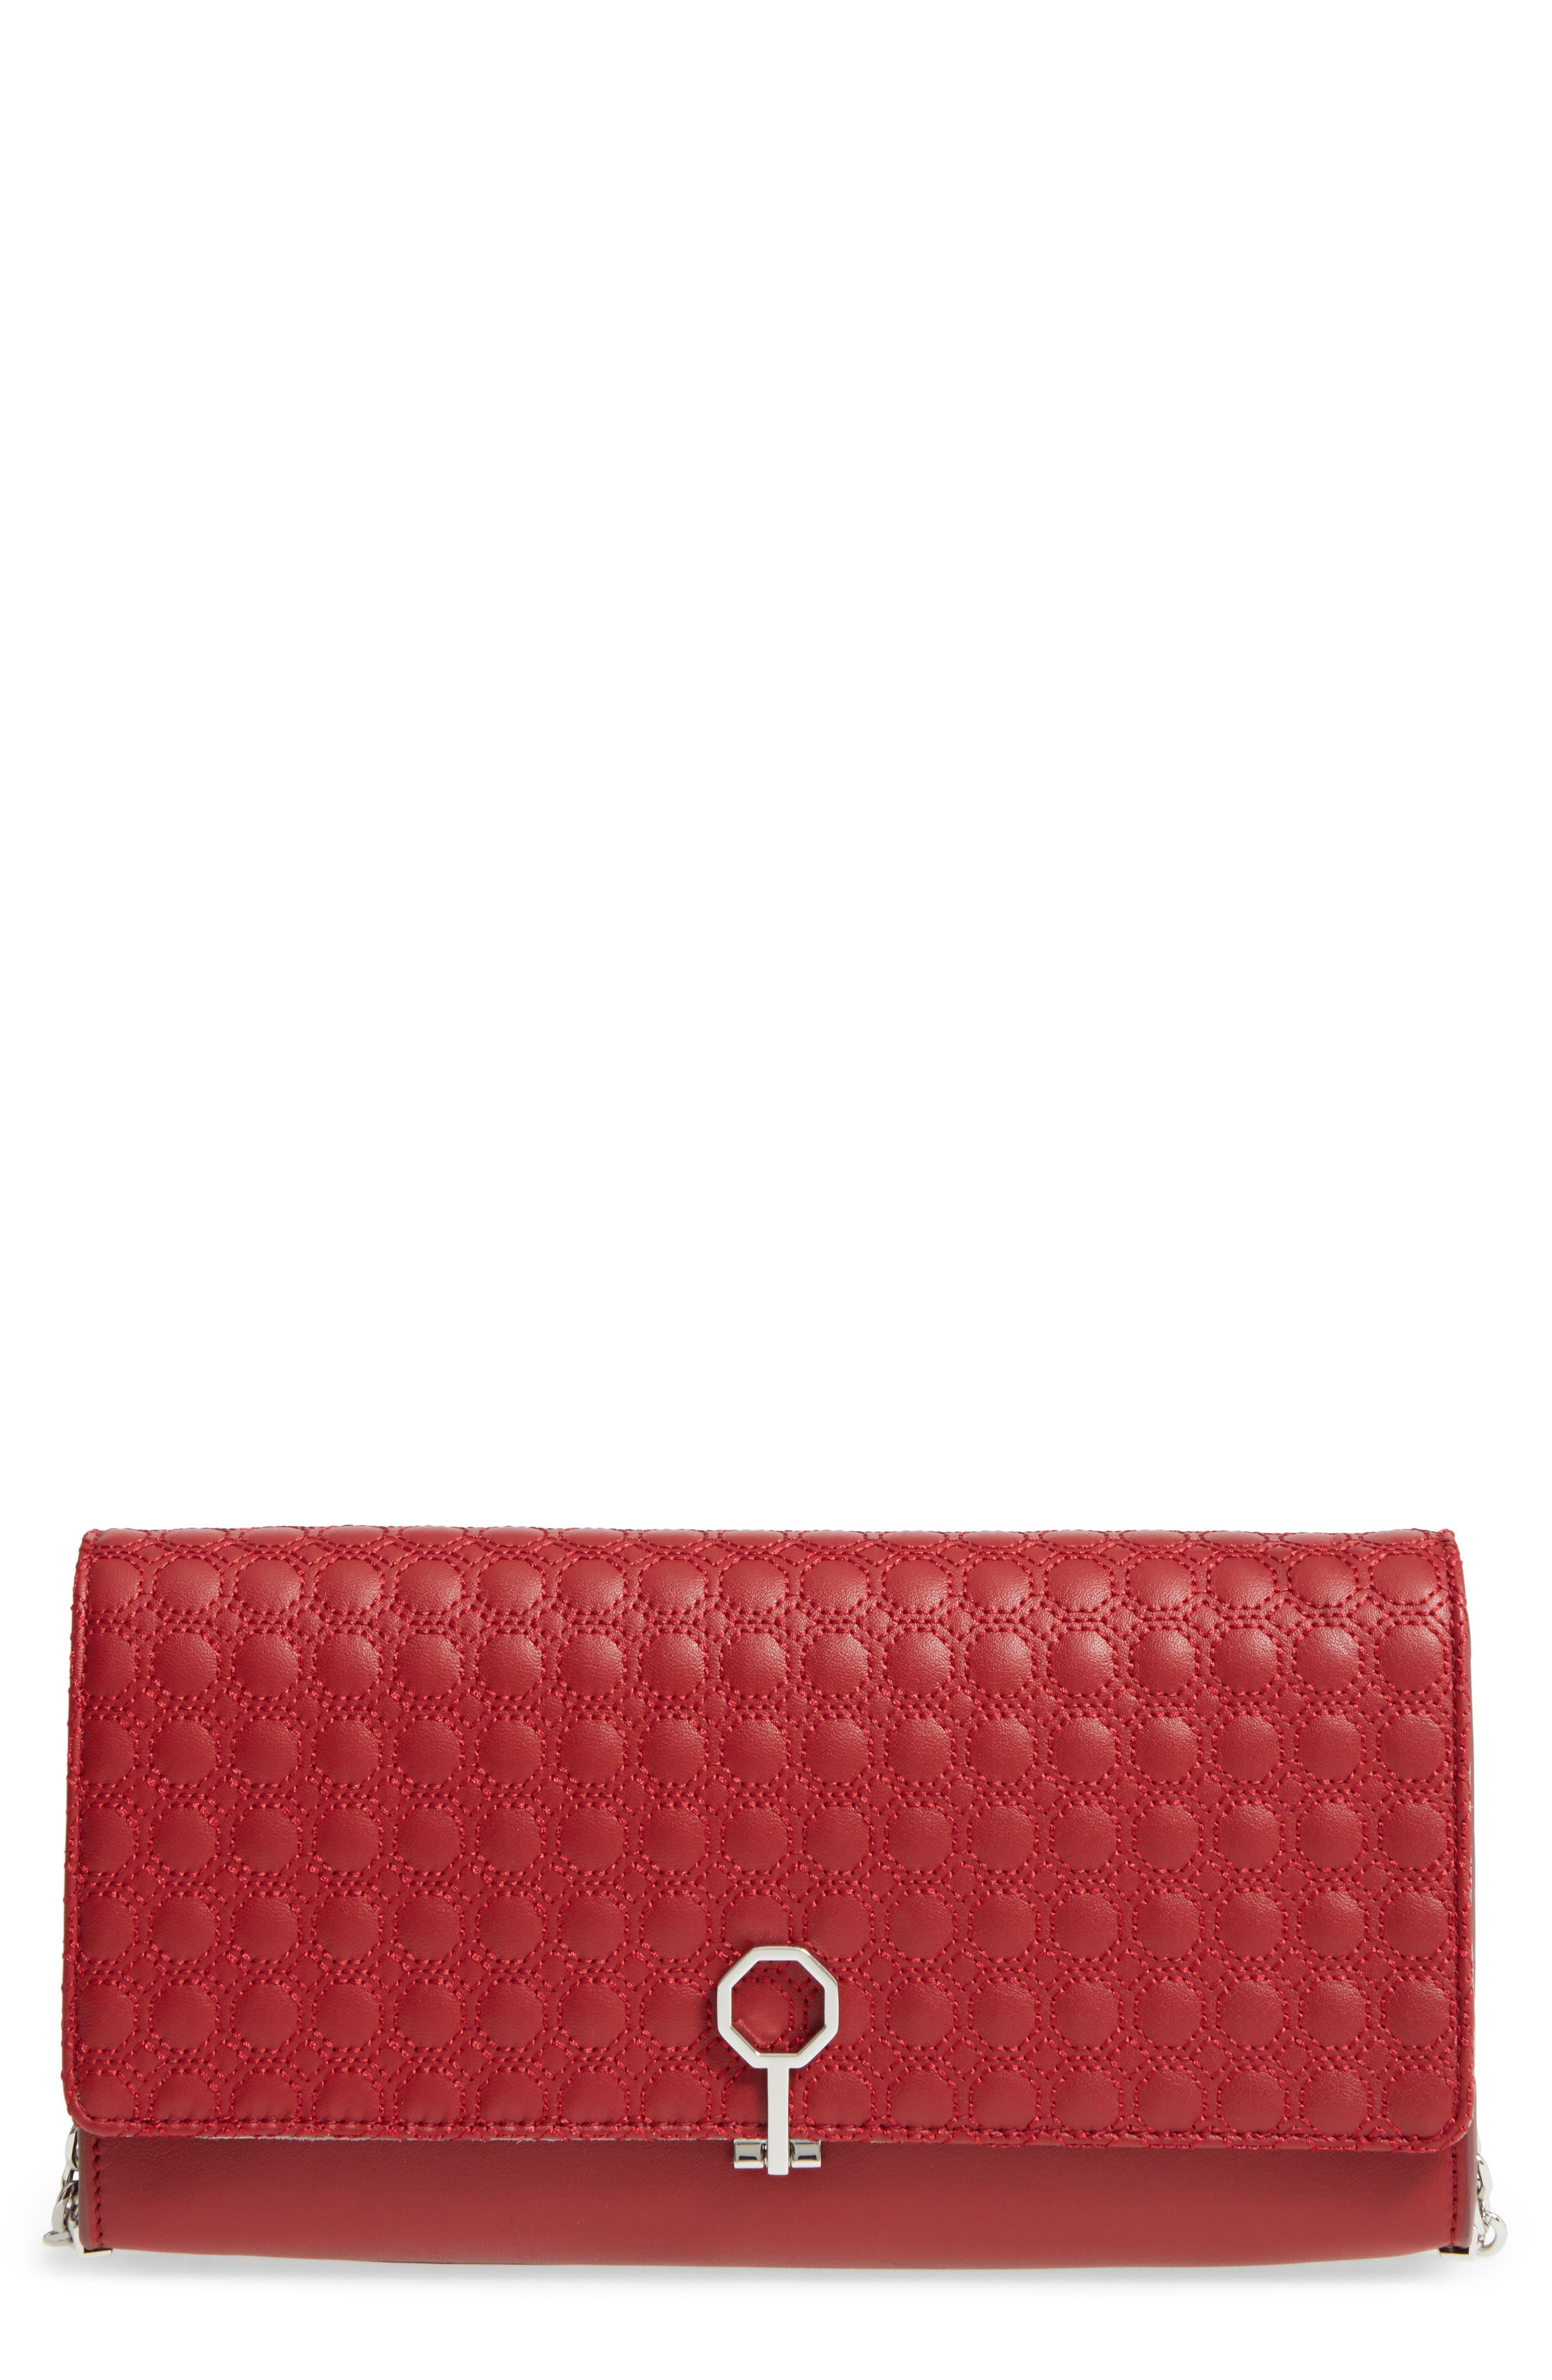 'Yvet' Leather Flap Clutch,                         Main,                         color, Cherry Red